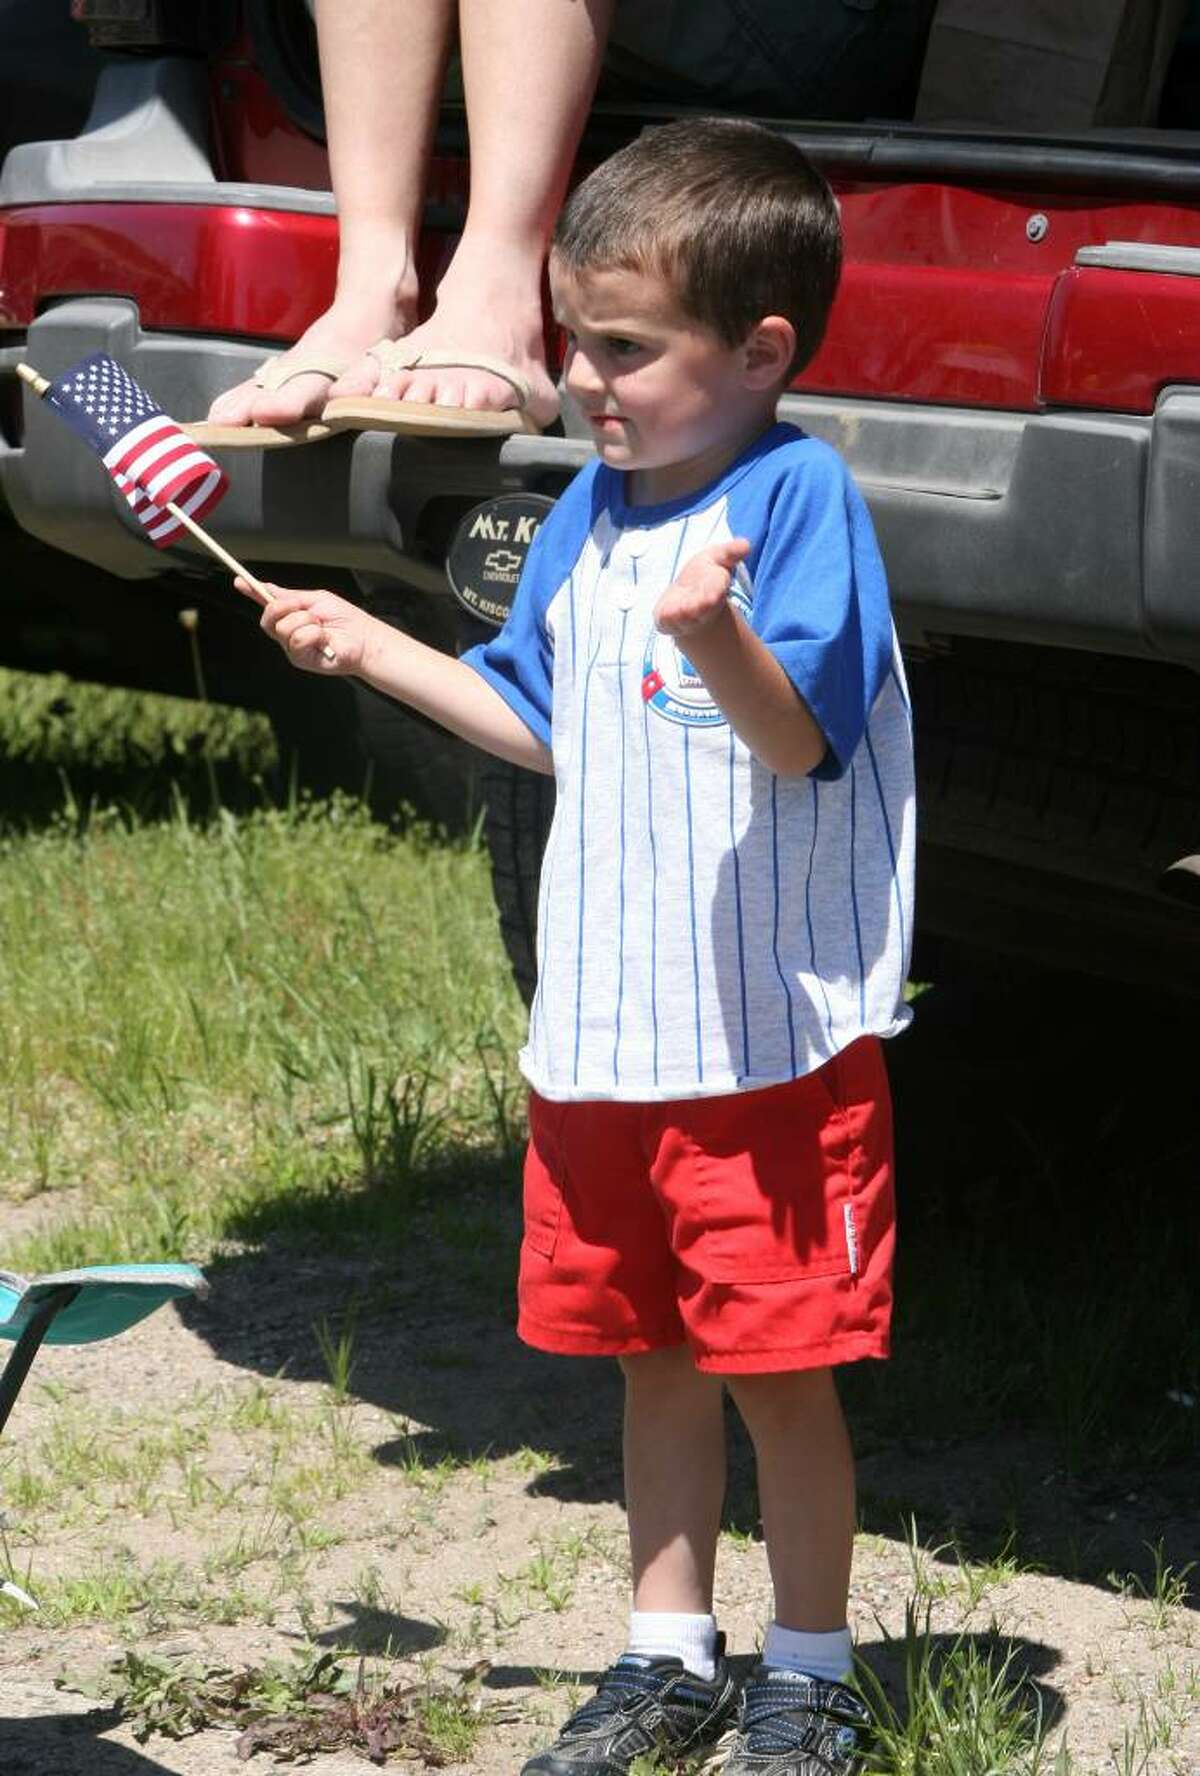 James Rich, 4 of Seymour, waves to marchers in the Seymour Memorial Day parade on Sunday morning.